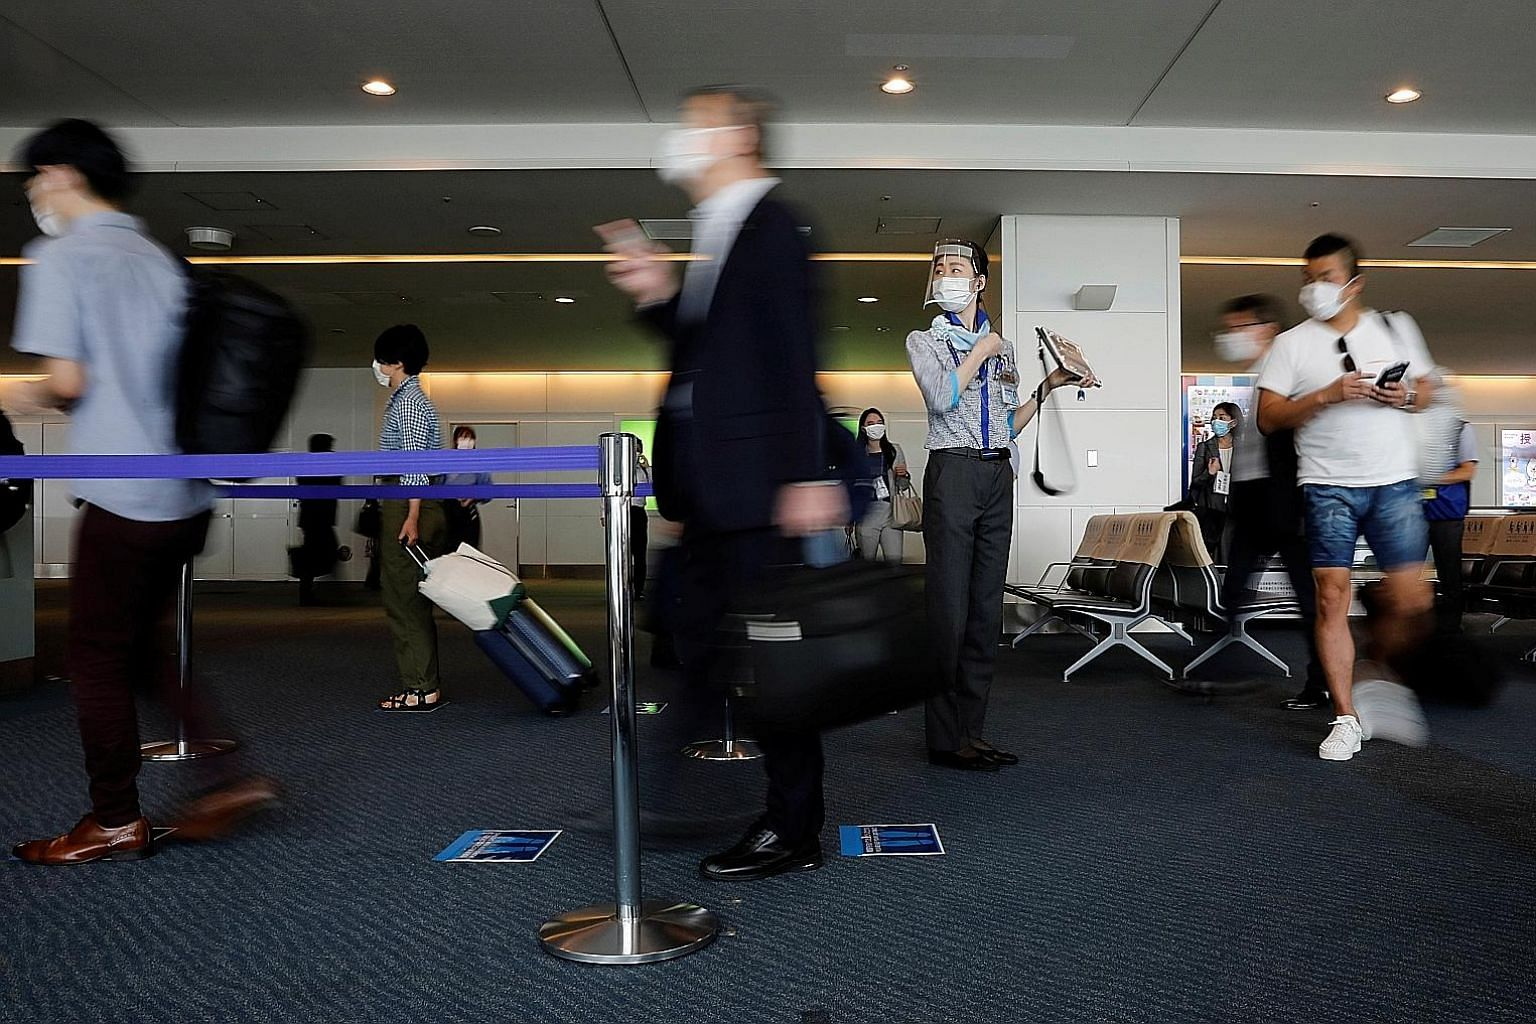 Tokyo's Haneda Airport pictured early this month. Prime Minister Shinzo Abe announced plans to open Japan's borders to business tourists, initially accepting up to 250 daily from countries with low infection rates. PHOTO: REUTERS